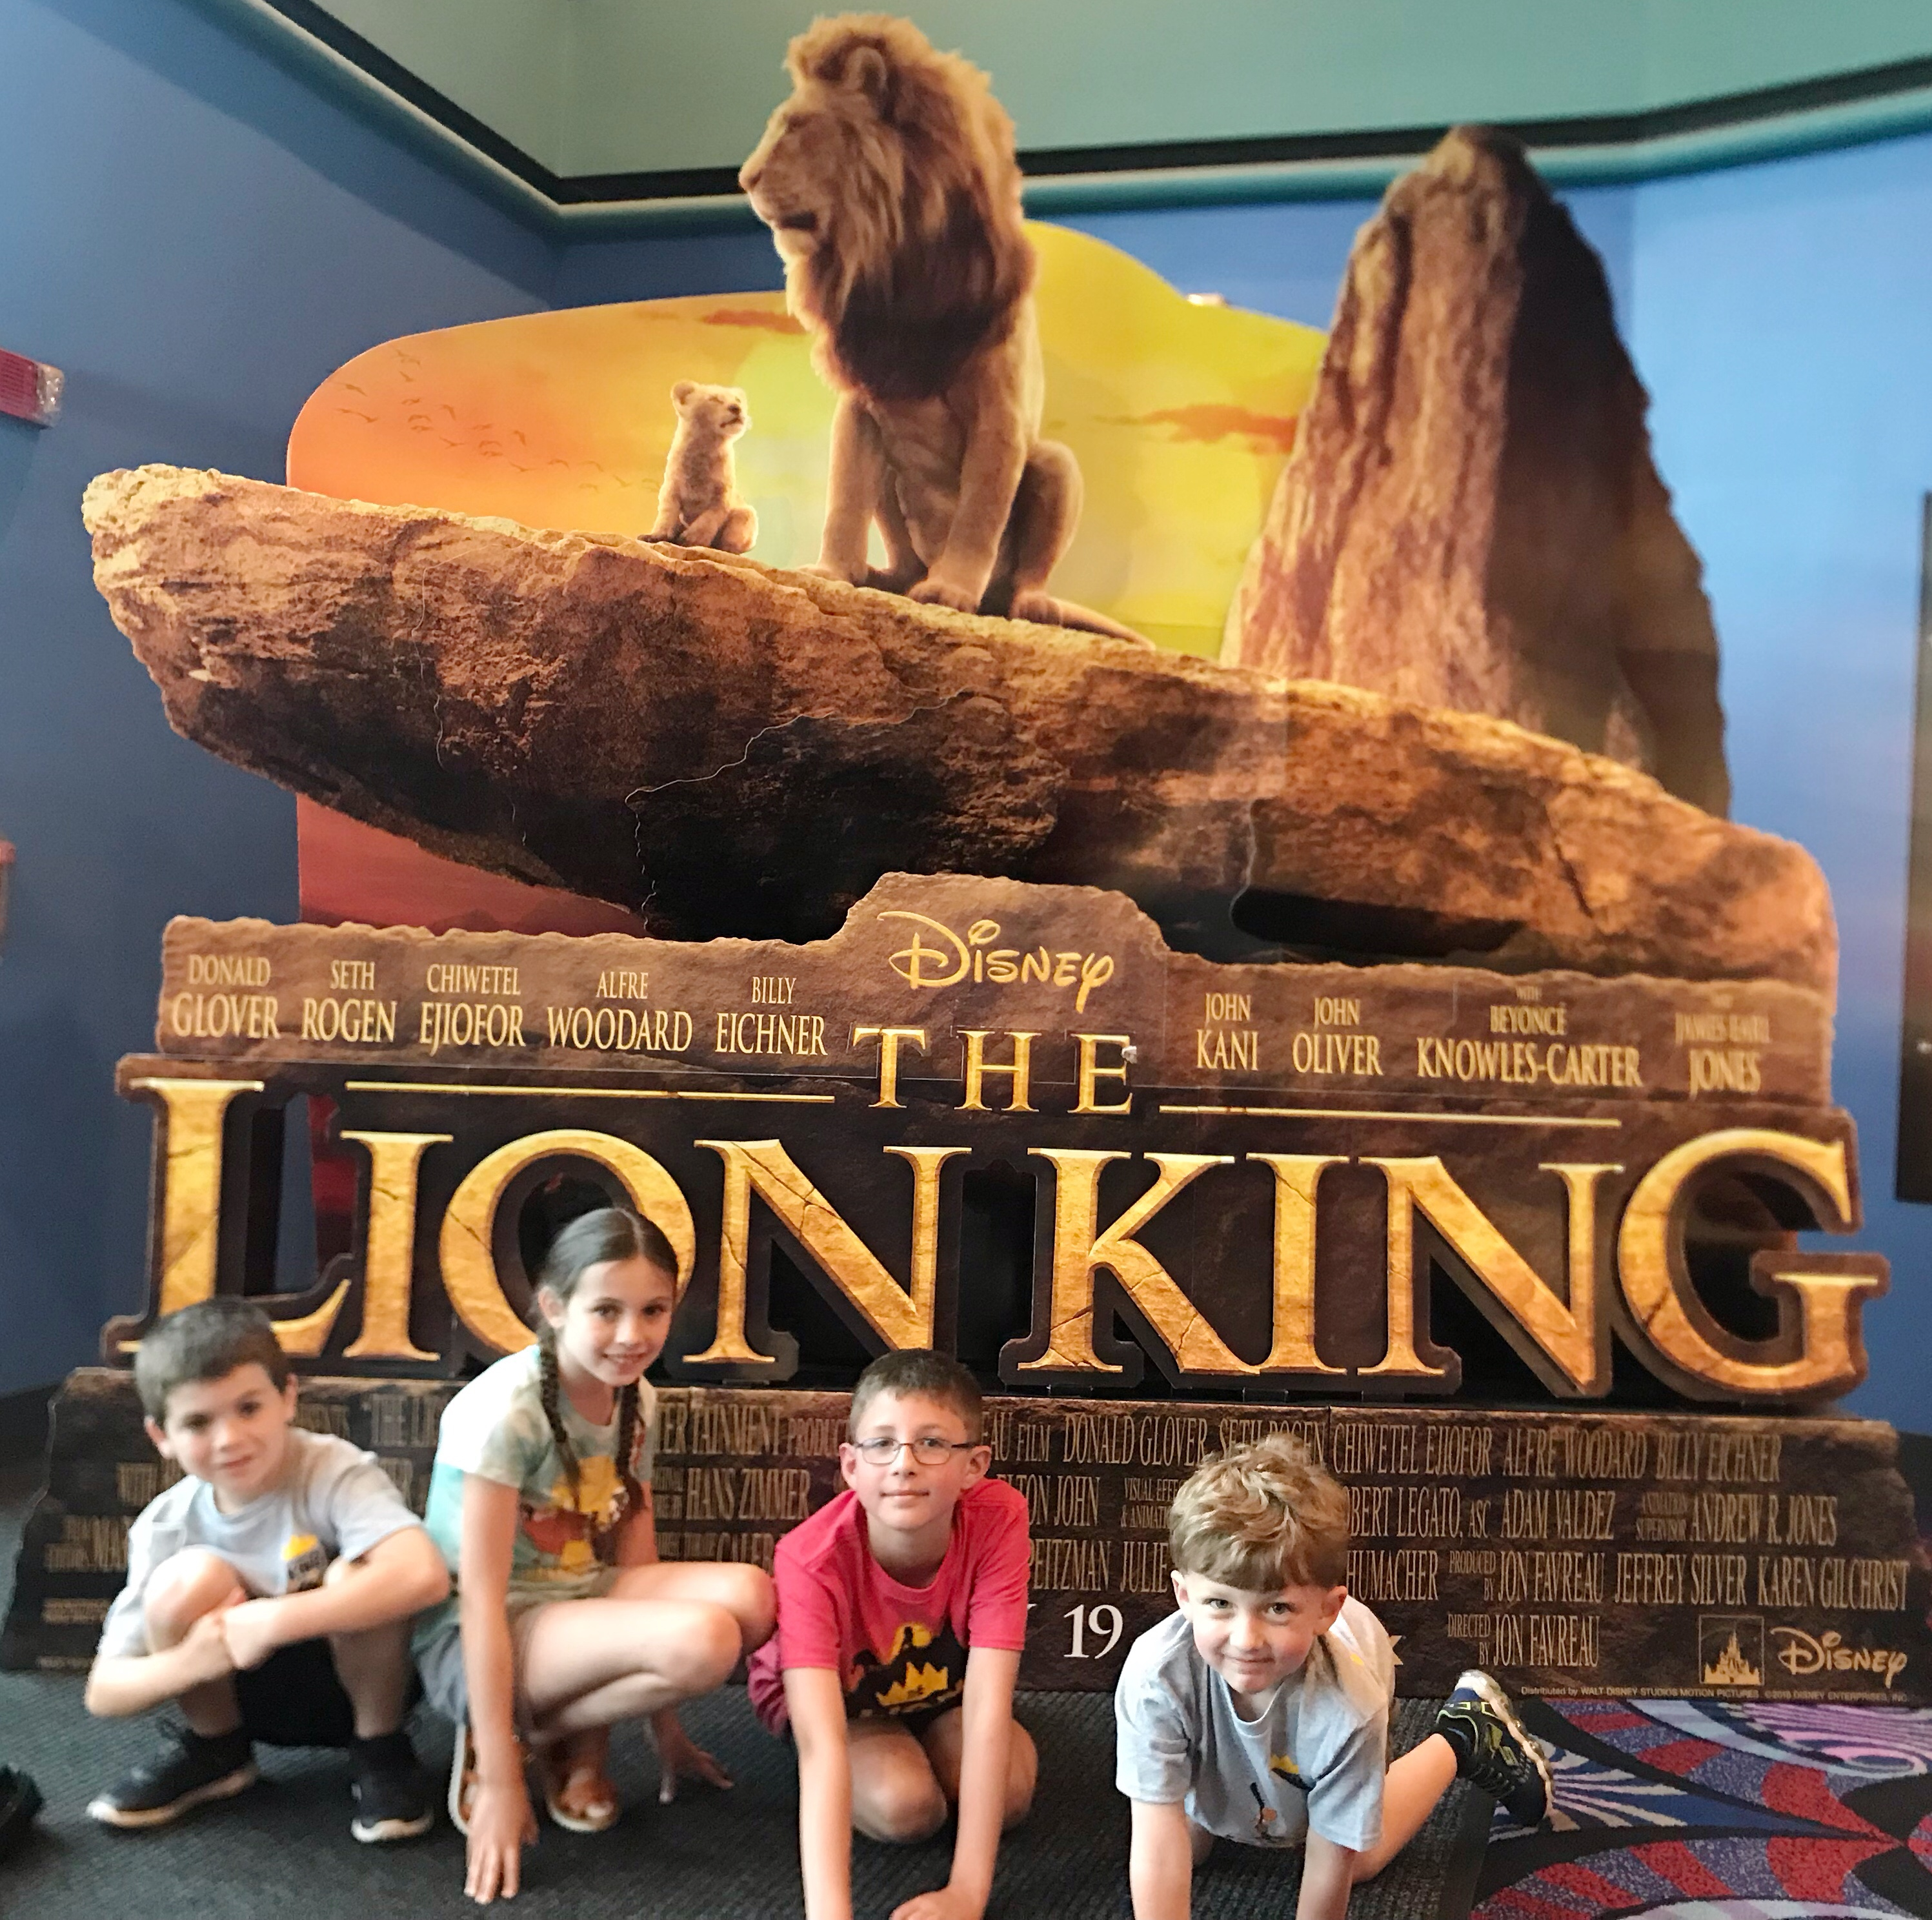 Is the Lion King kid friendly?